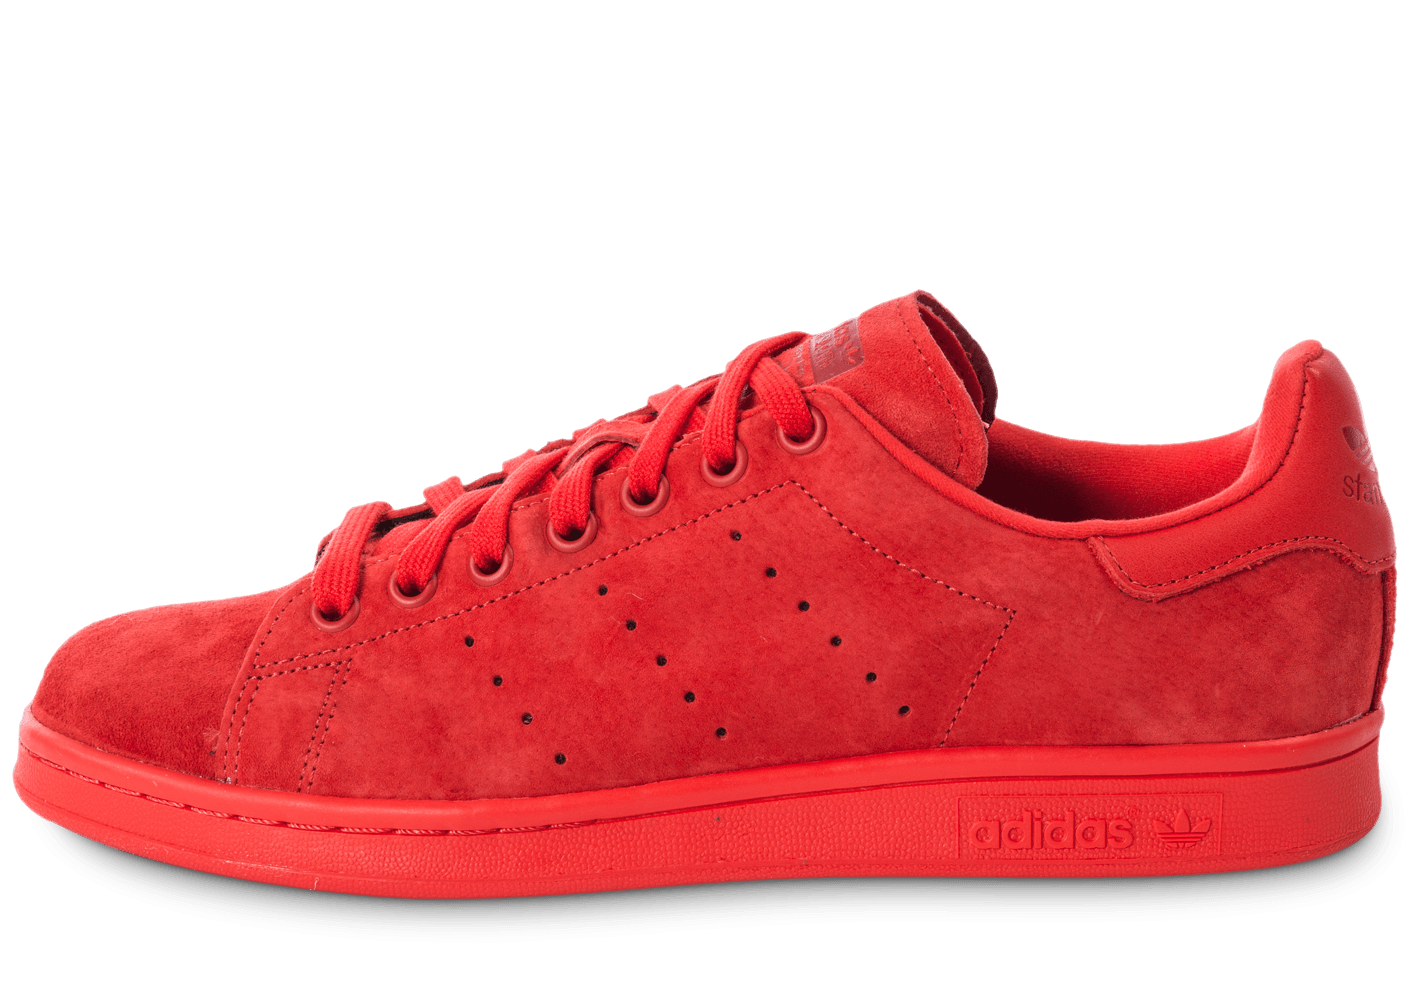 official photos a587b 40433 ... purchase adidas stan smith suede rouge 0b039 d9c72